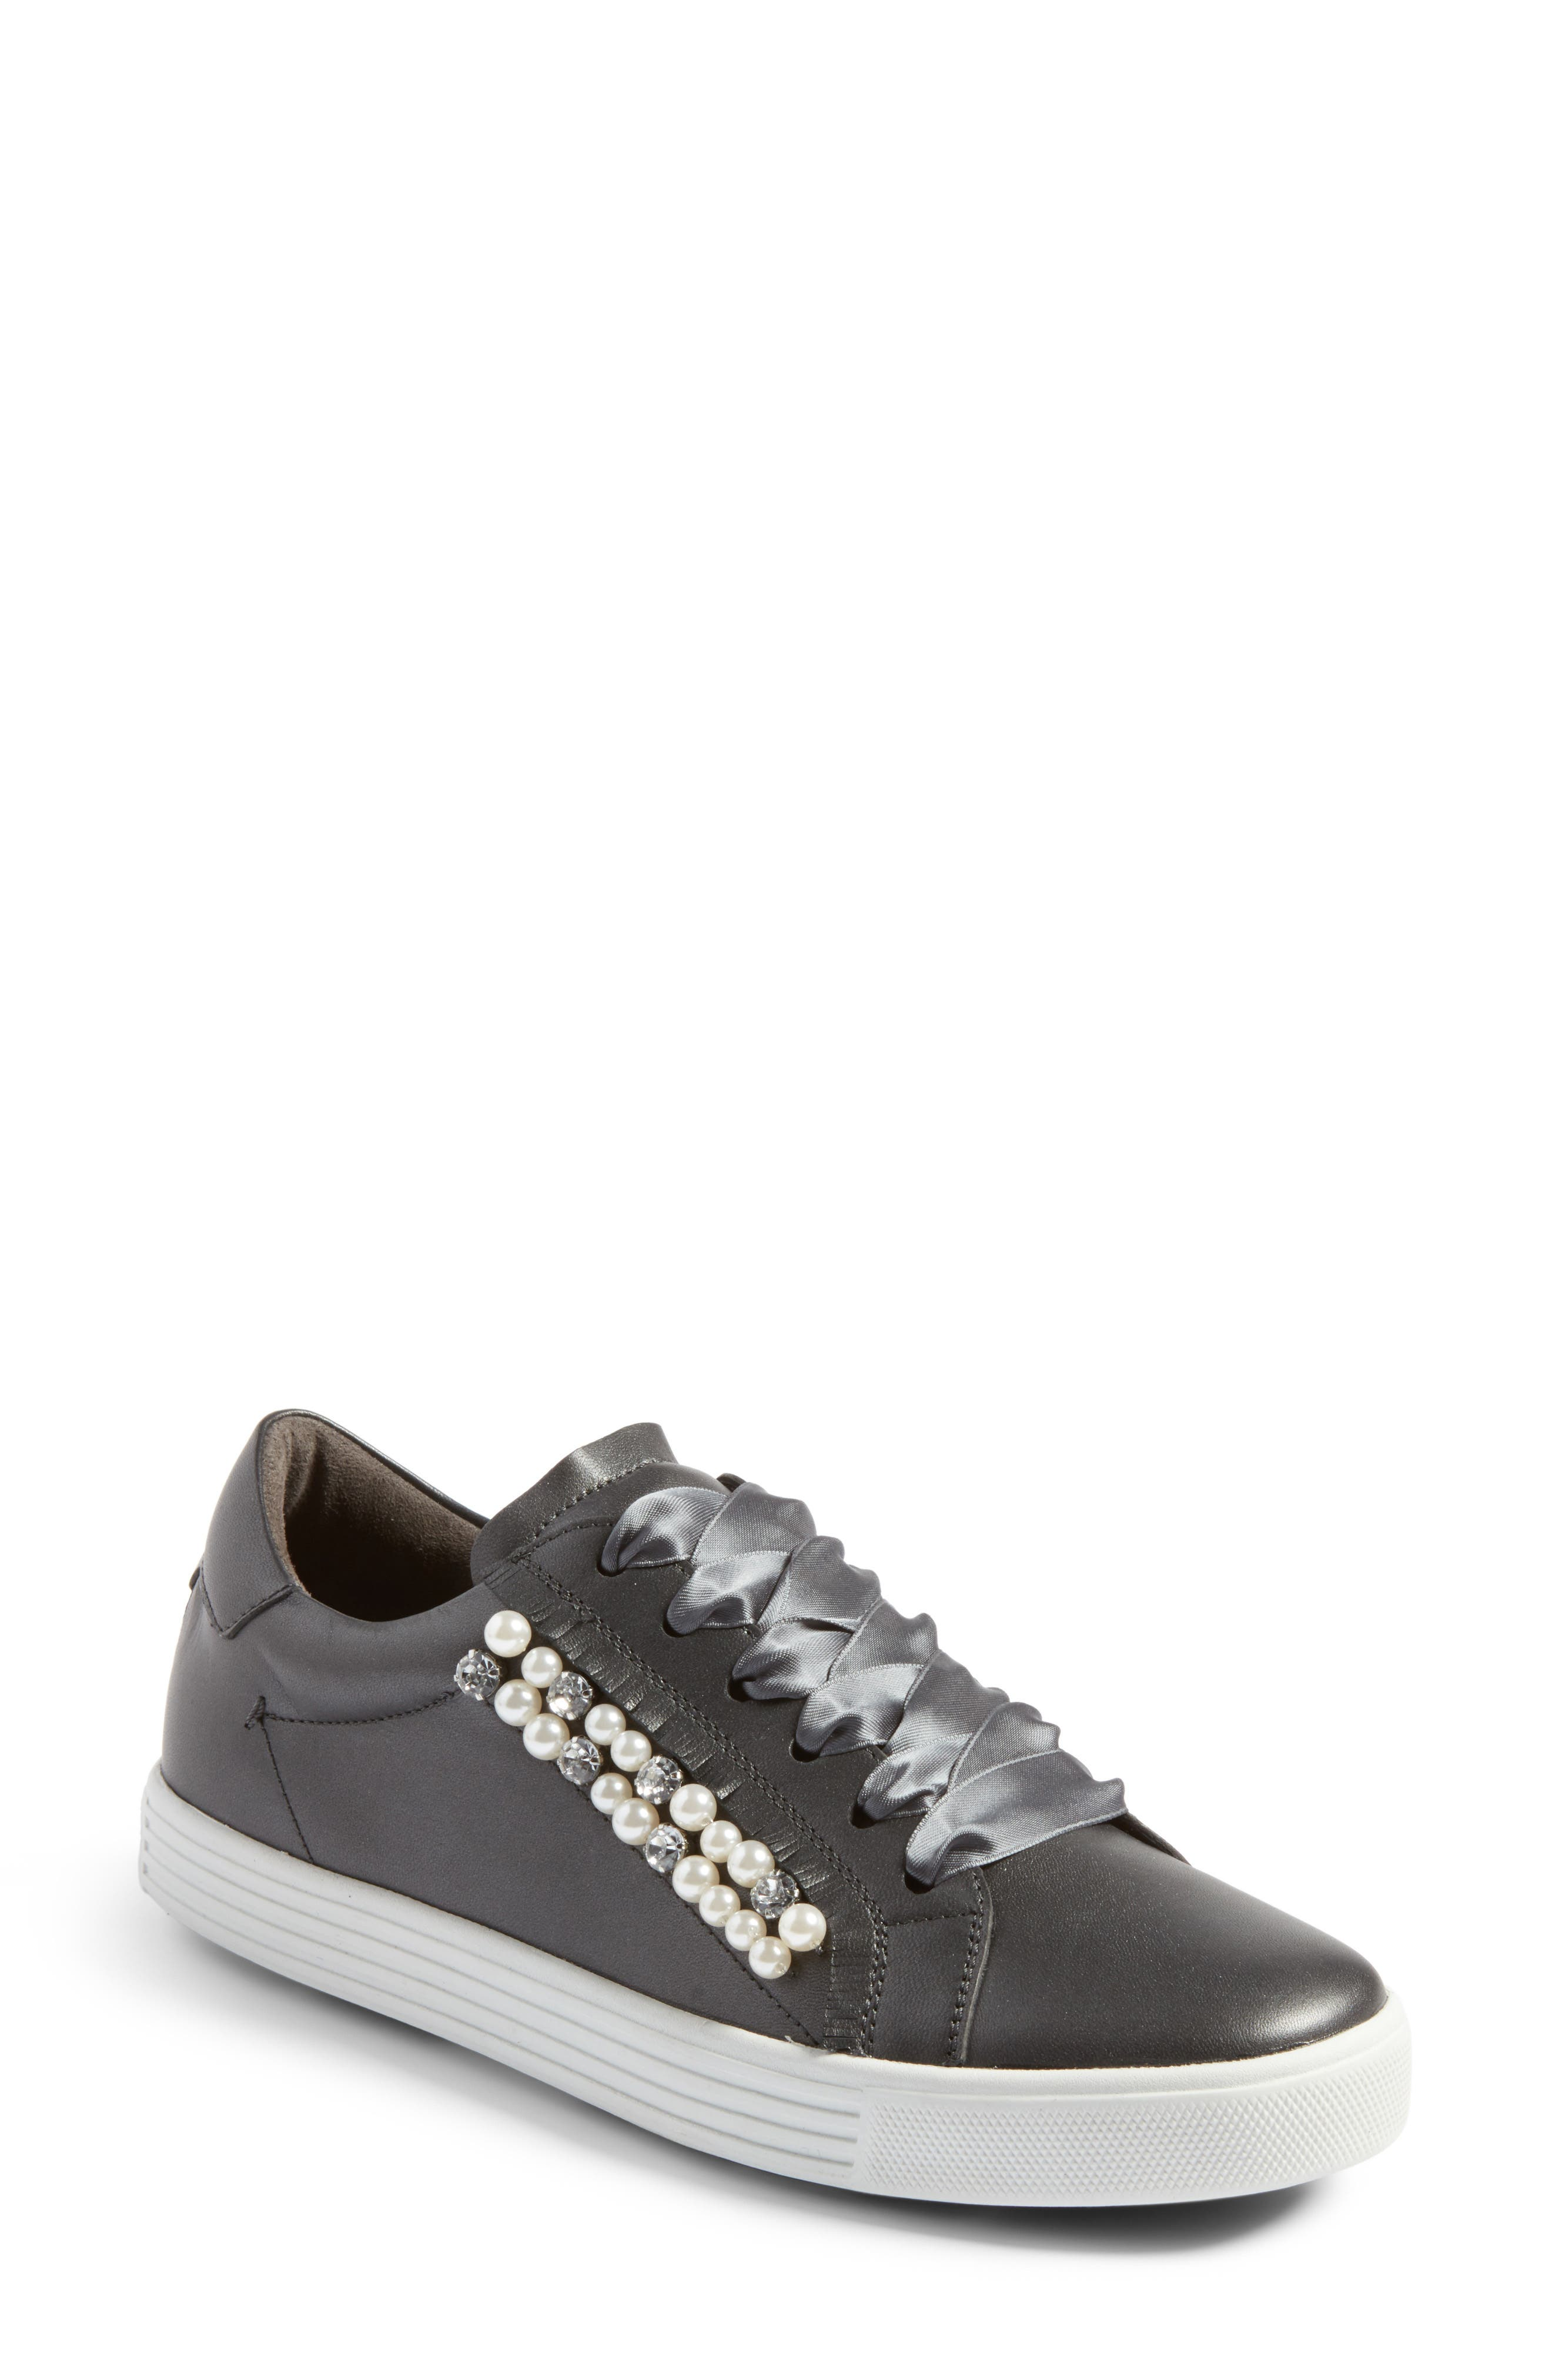 Kennel & Schmenger Town Sneaker,                         Main,                         color, 020